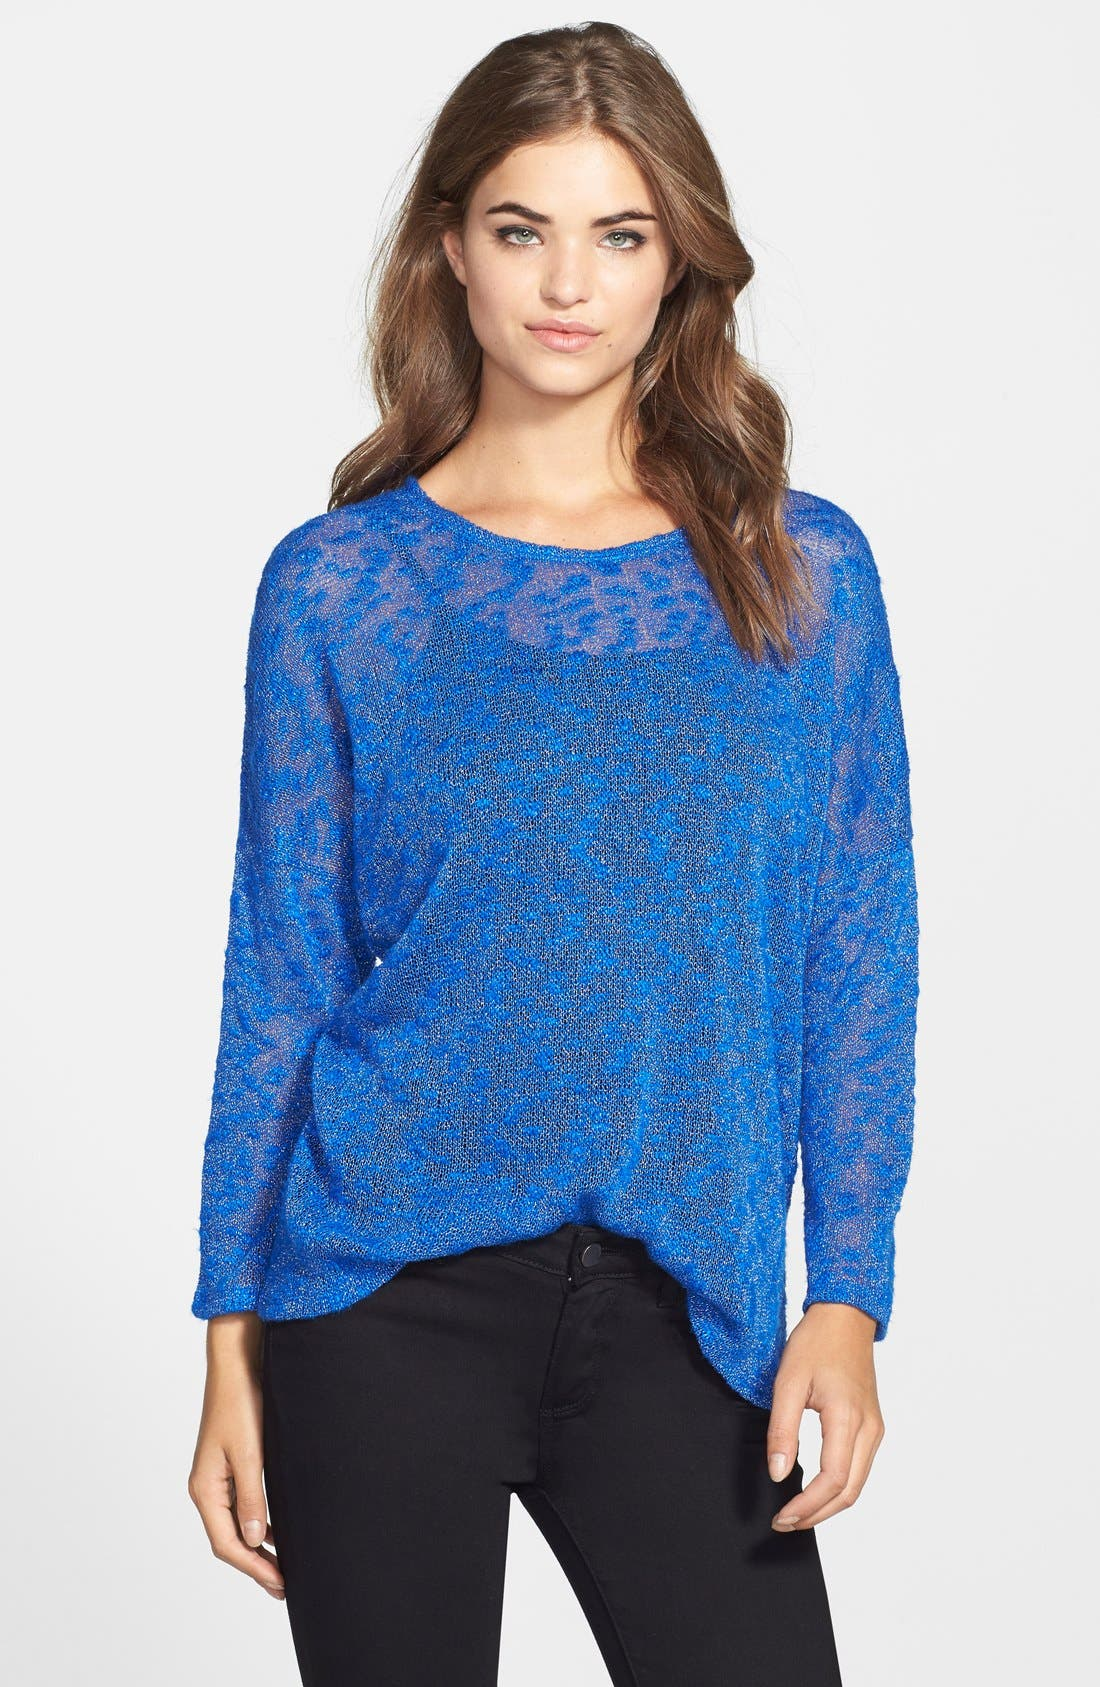 Silver Shimmer Mélange Pullover,                             Main thumbnail 1, color,                             Bright Blue